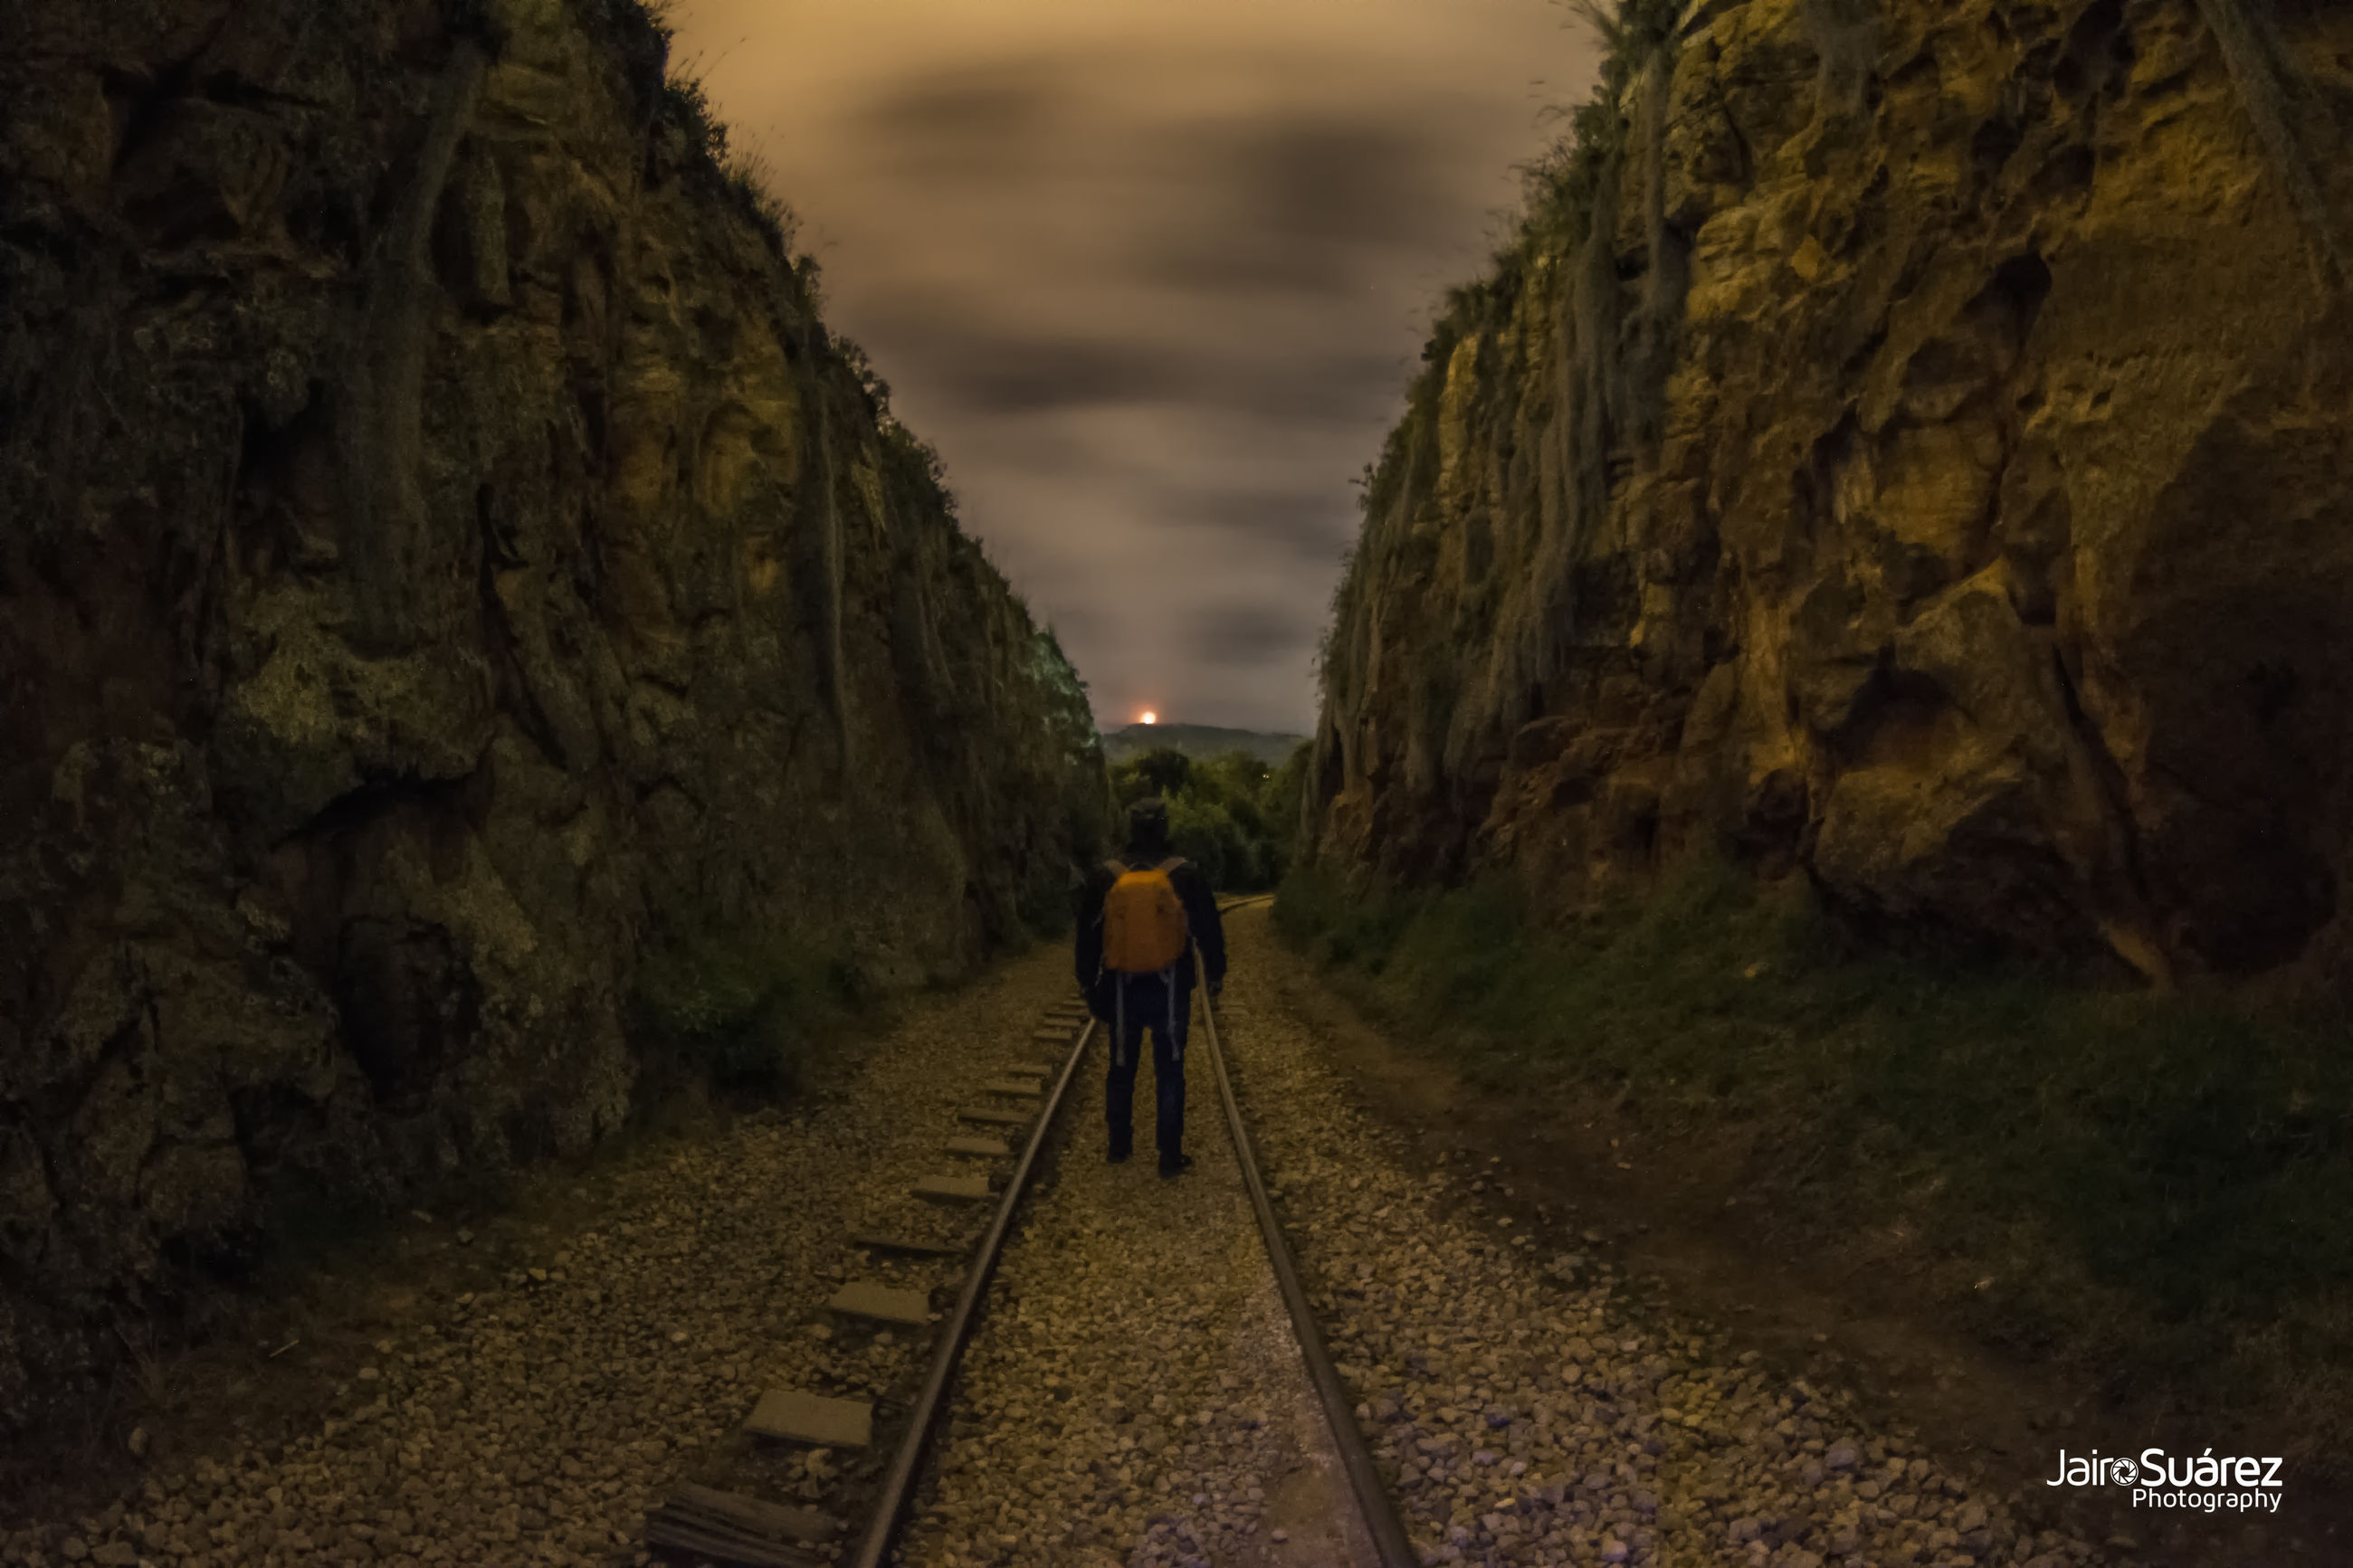 real people, transportation, direction, the way forward, rear view, one person, lifestyles, track, full length, railroad track, walking, rail transportation, nature, leisure activity, men, day, cloud - sky, outdoors, standing, diminishing perspective